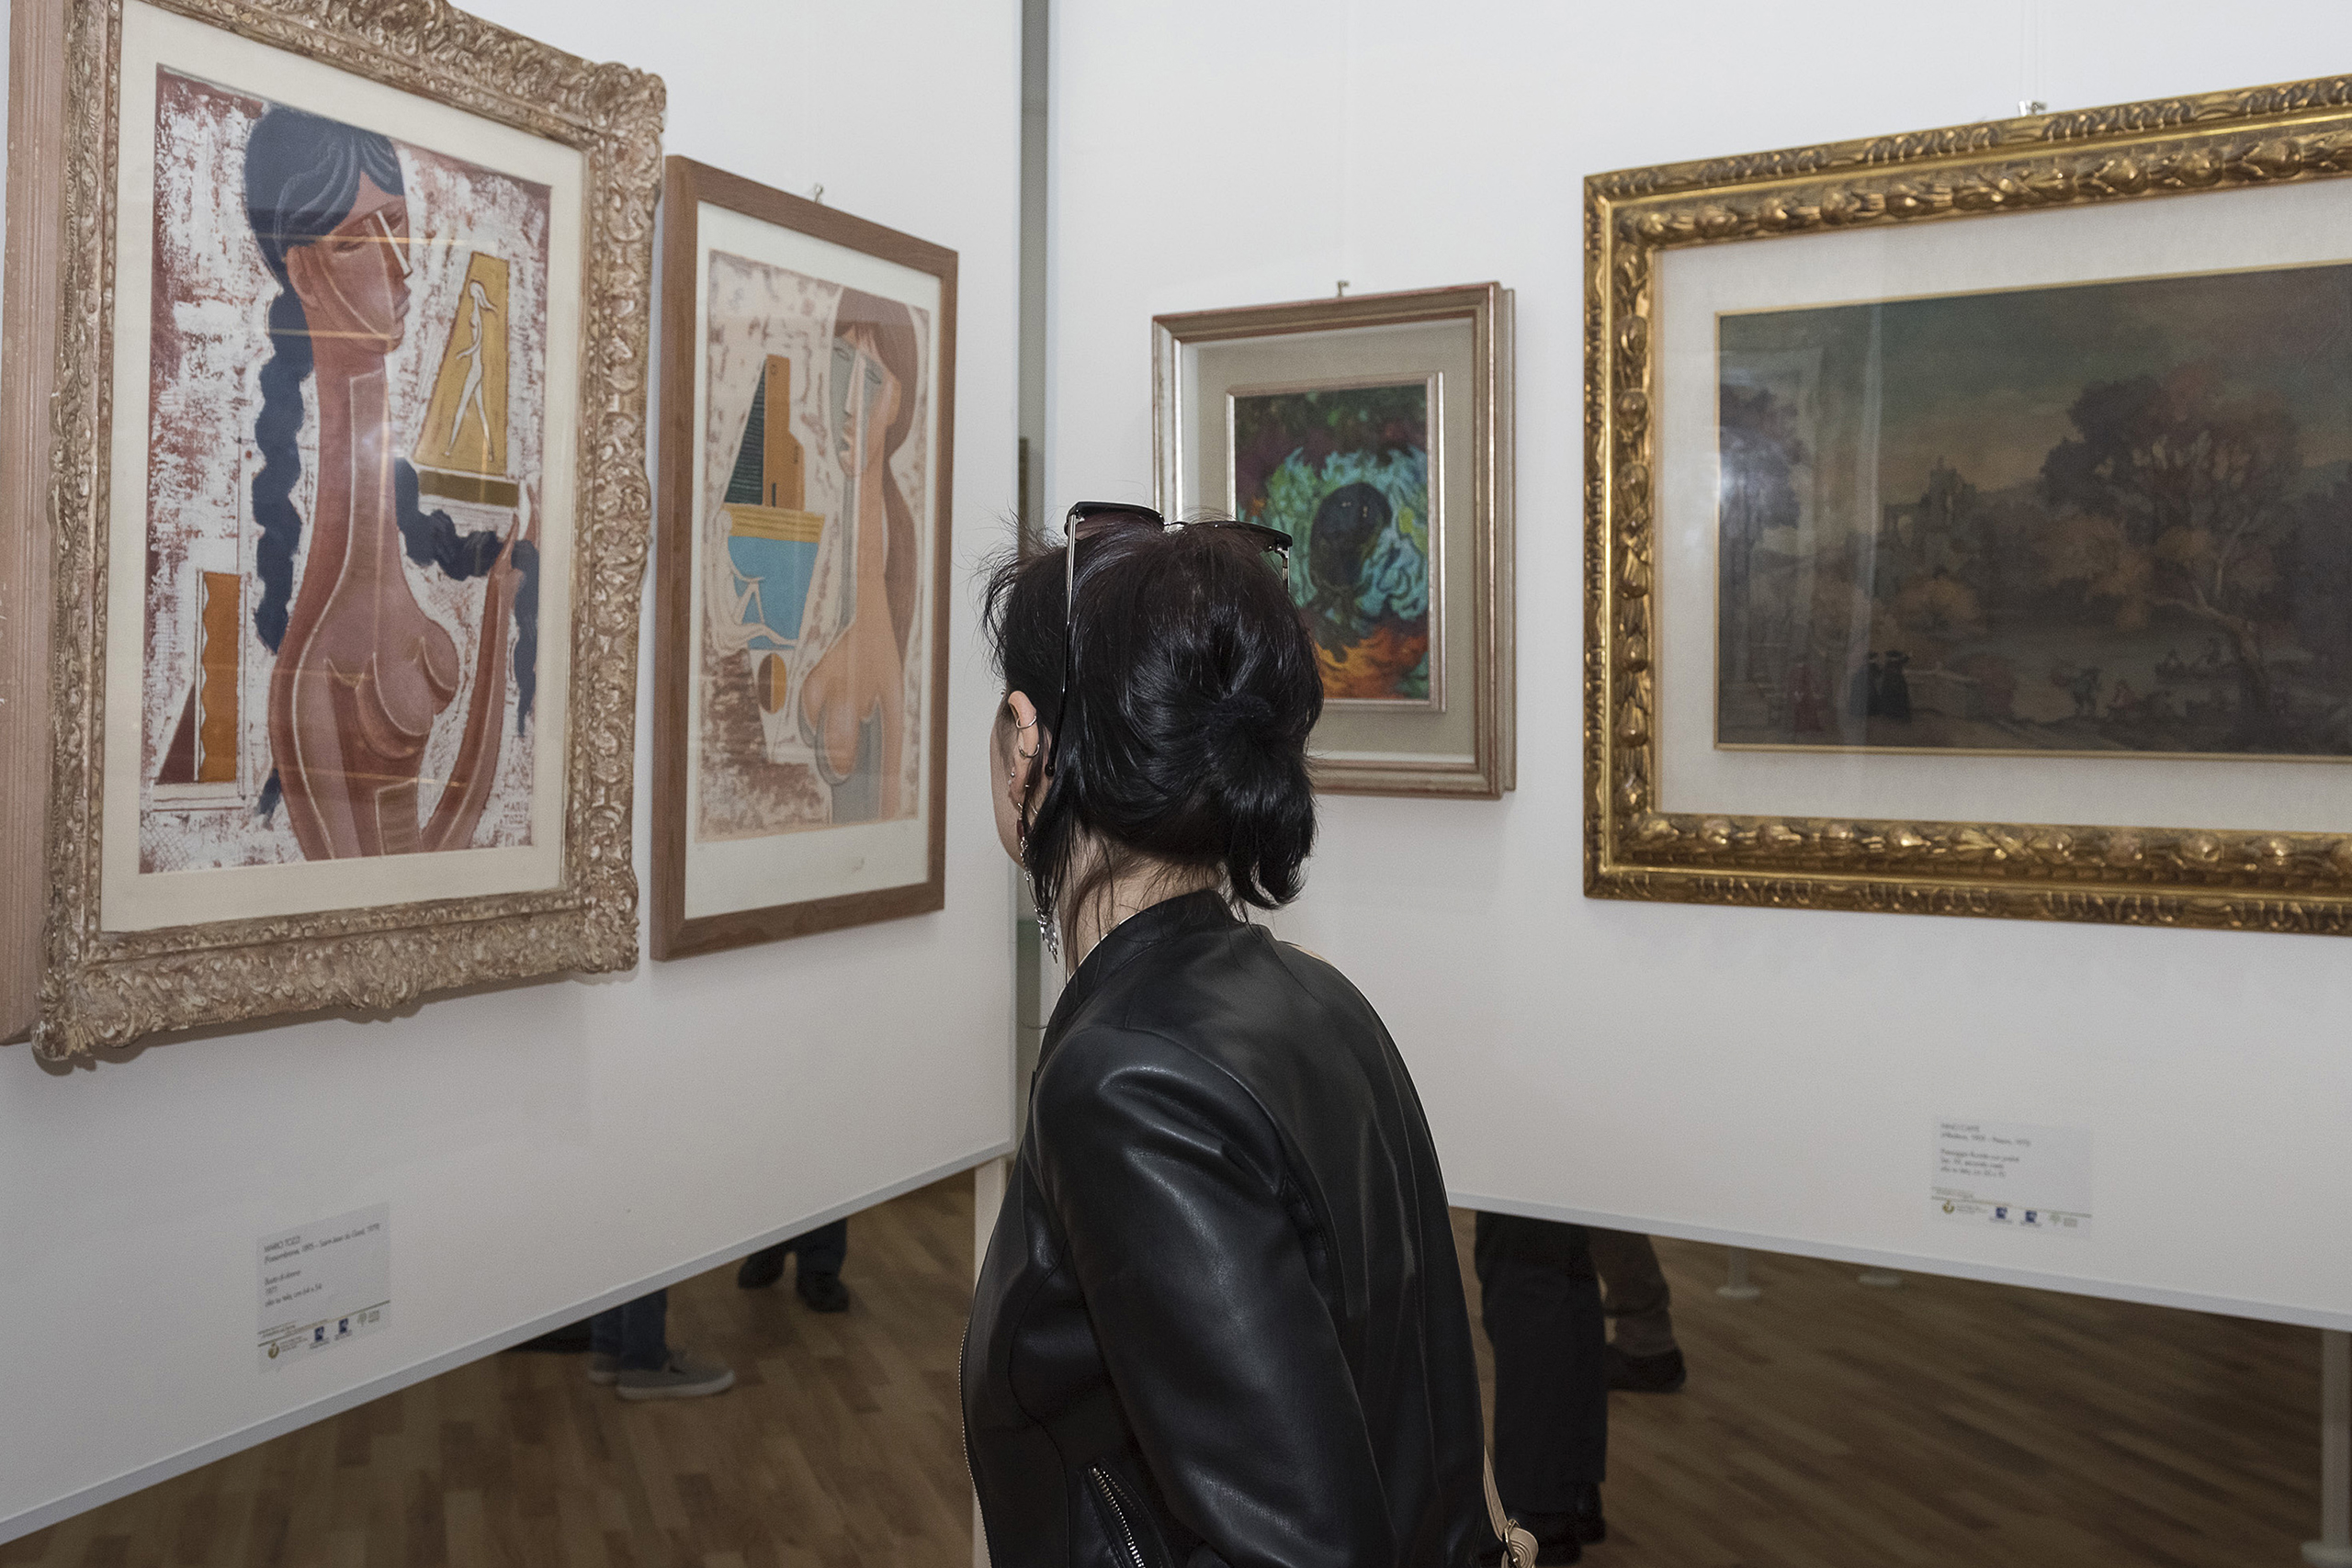 A visitor admires paintings during the  Victory of the State  exhibition in Reggio Calabria, Italy, on May 7, 2016. The exhibition includes paintings that belonged to a boss of the 'Ndrangheta Calabrese mafia, notably two of Dali, and were confiscated by the court.